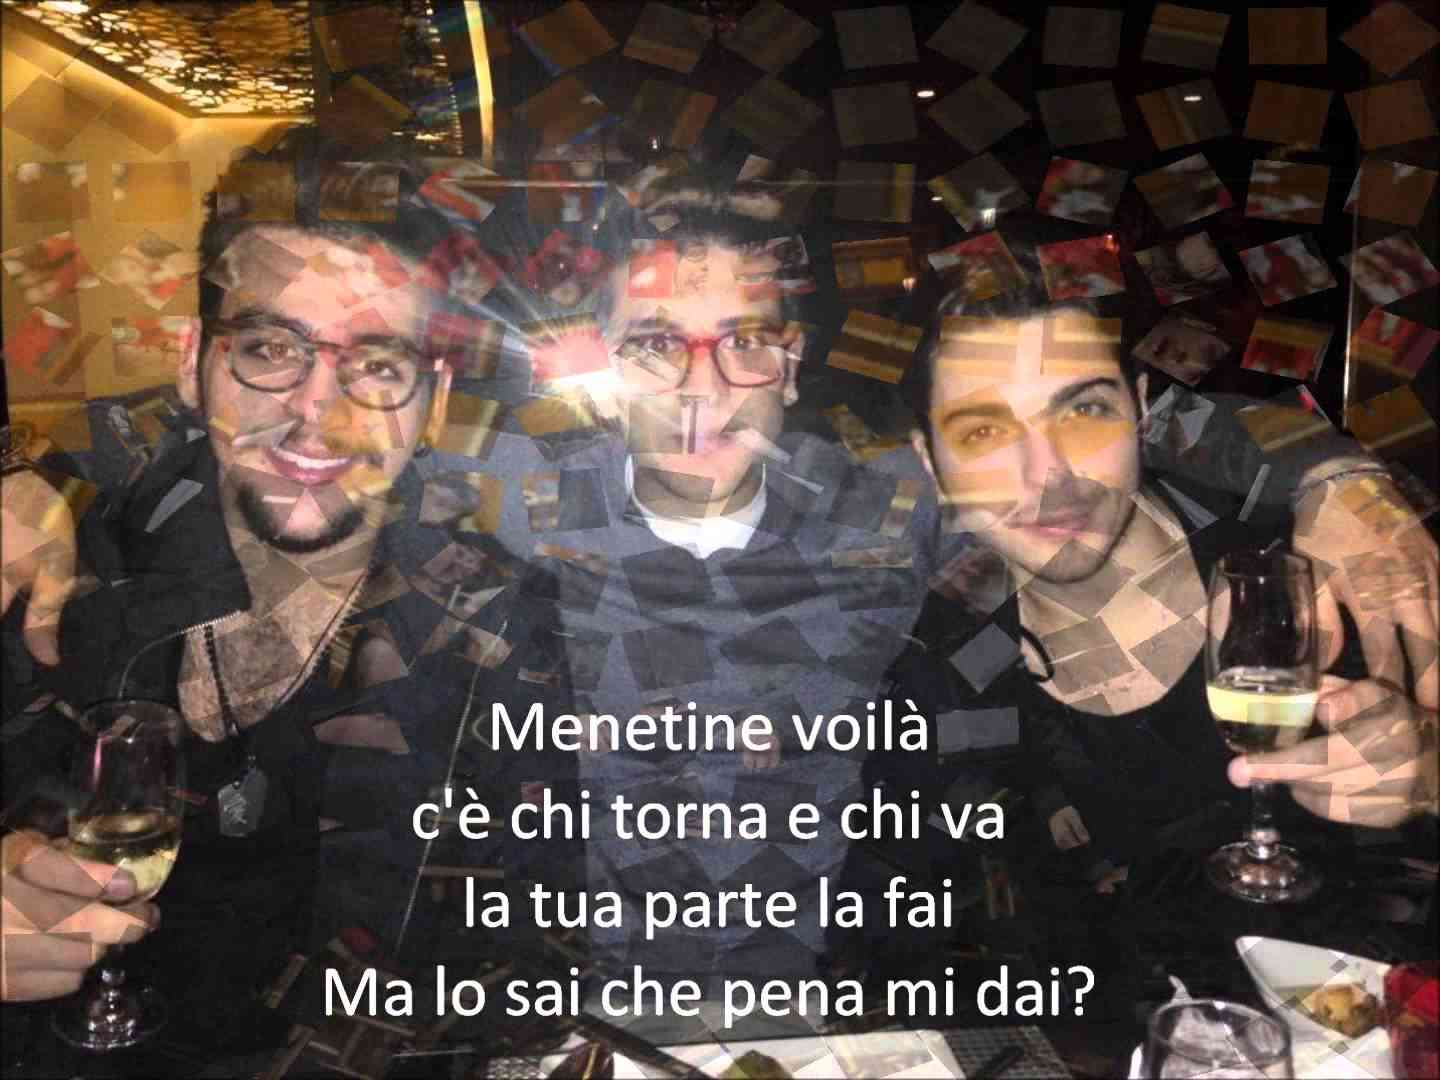 Vacanze Romane - Il Volo (+ Lyrics) - YouTube